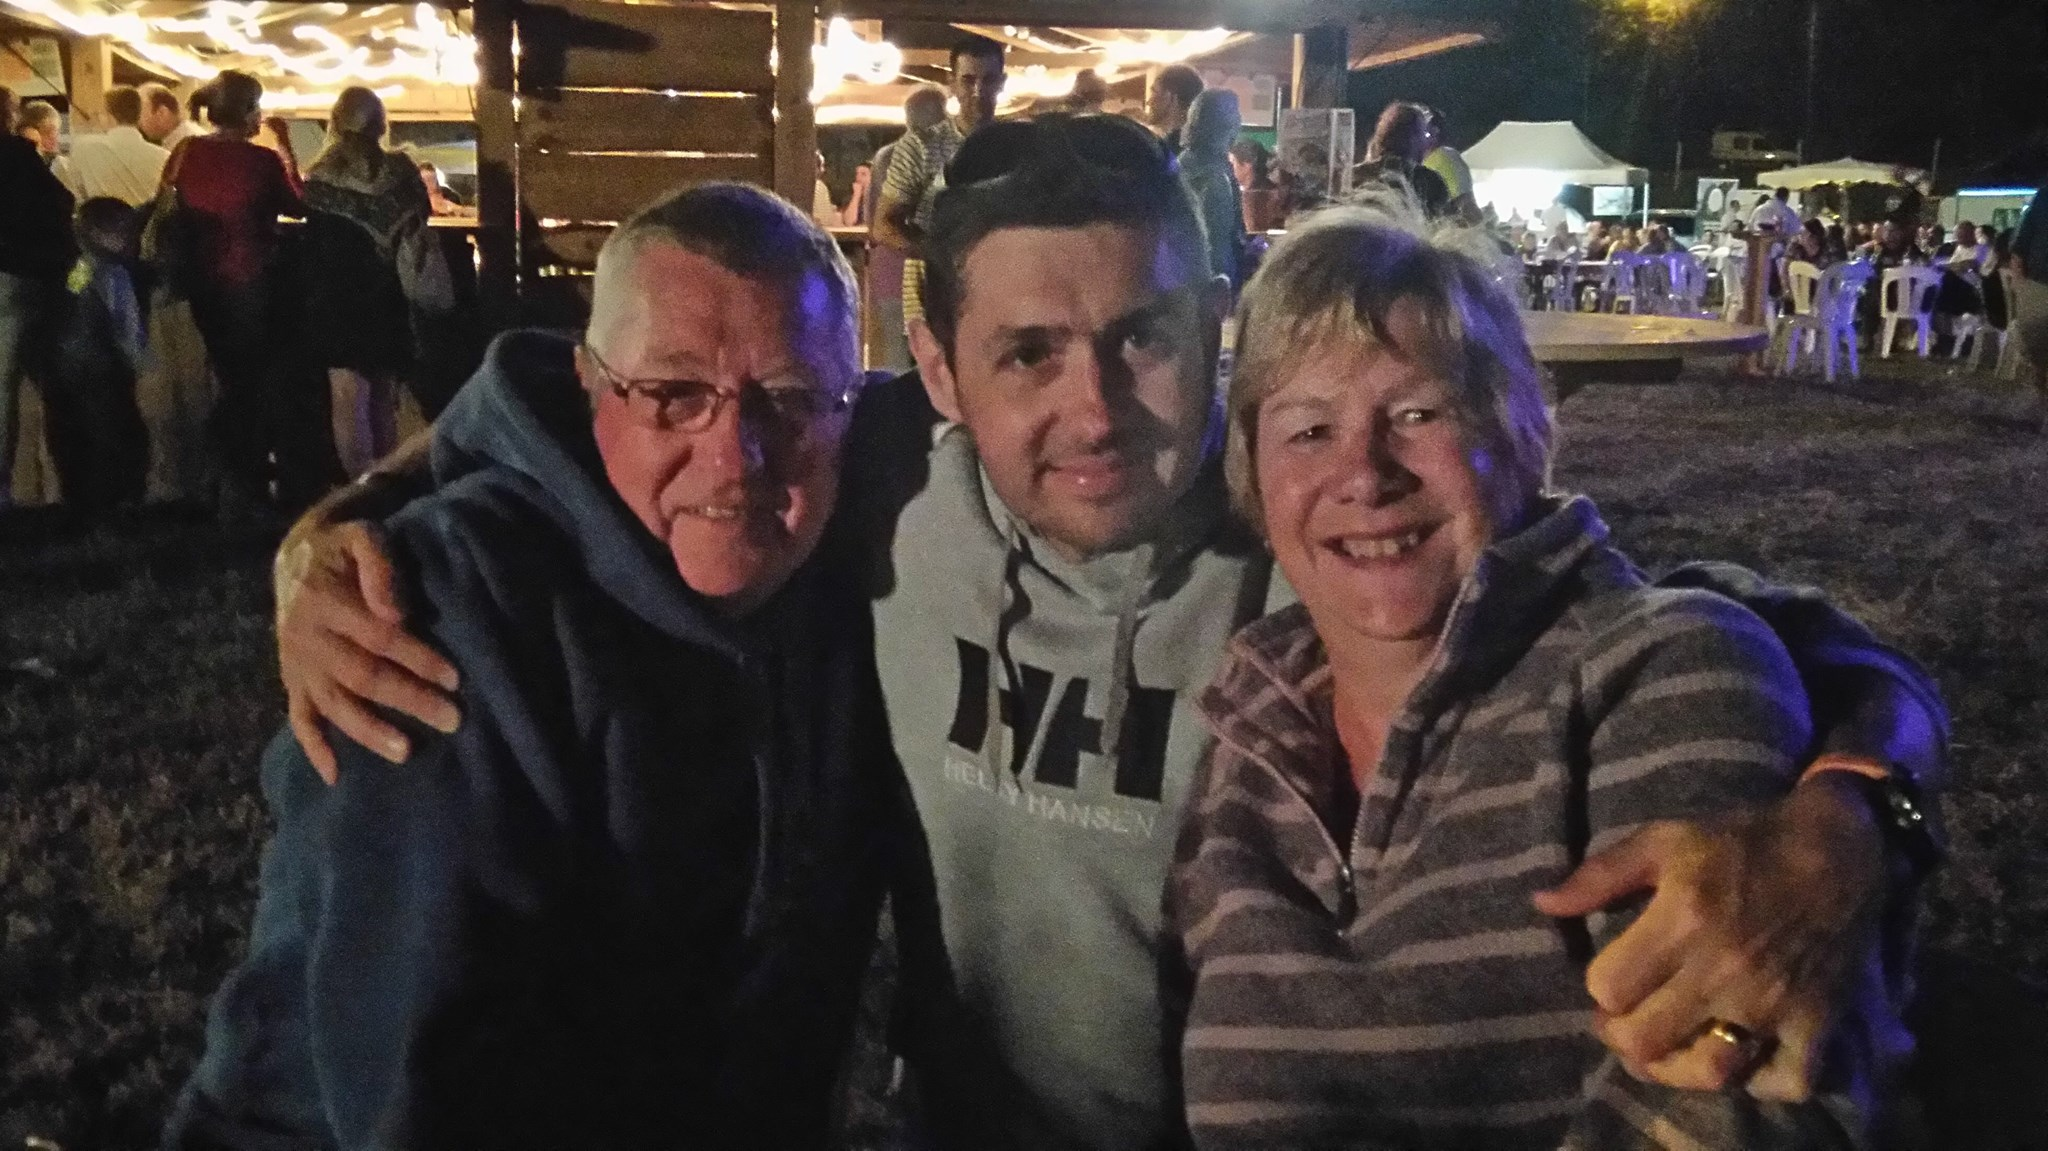 With Mum and Dad 18 months ago